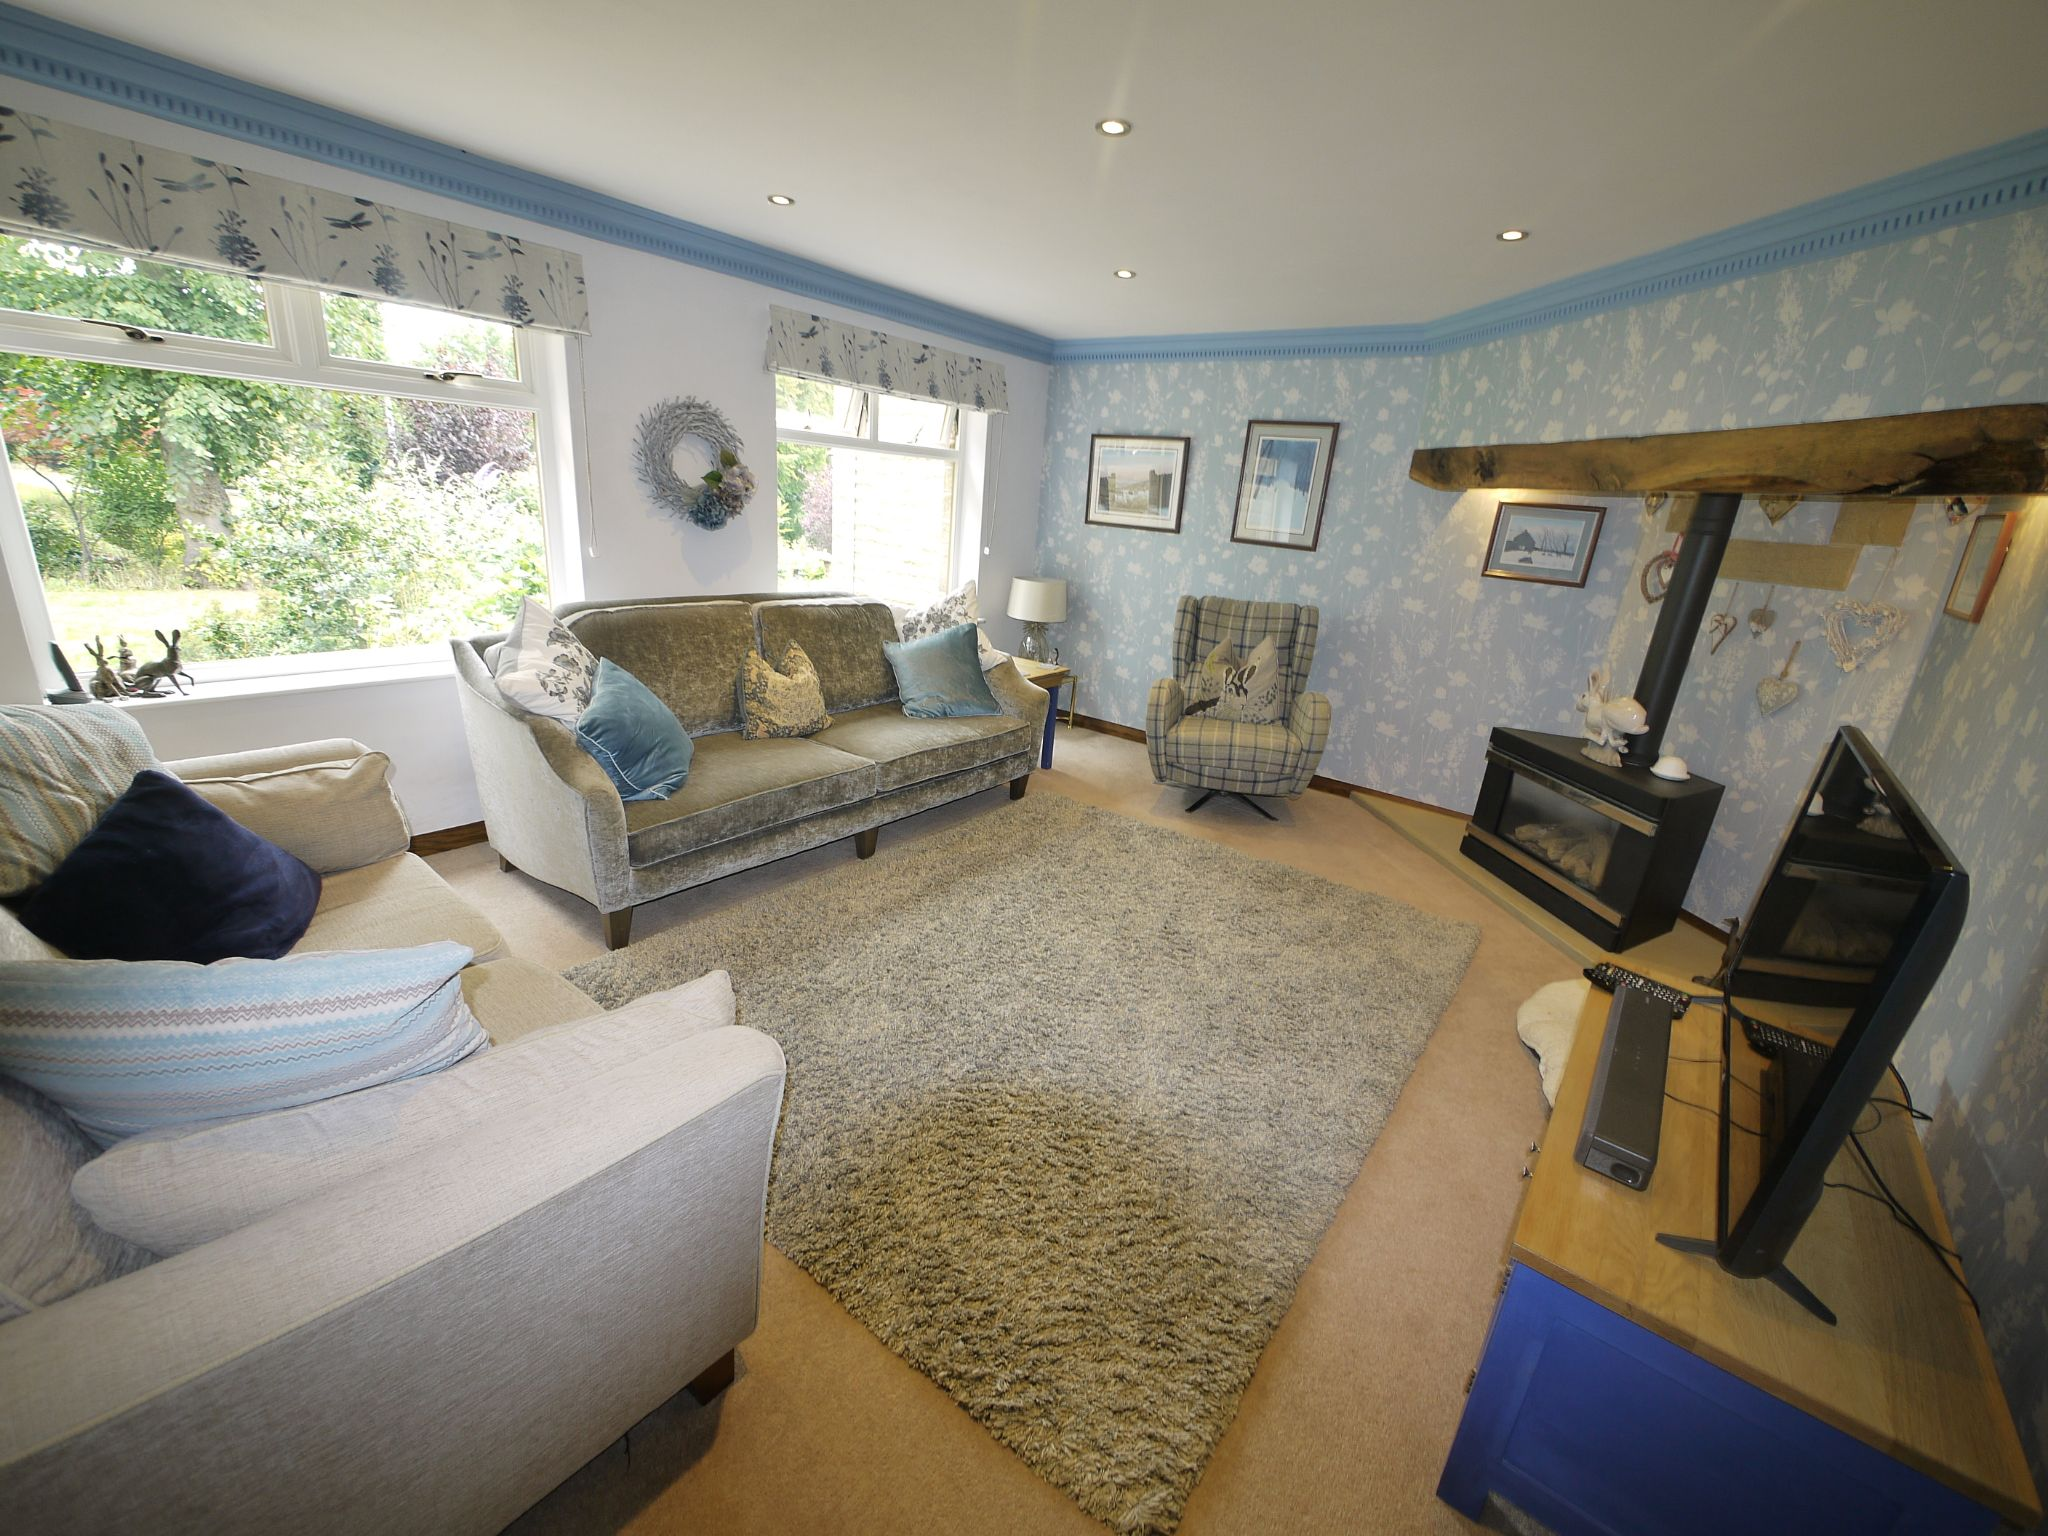 4 bedroom detached house For Sale in Brighouse - Lounge.